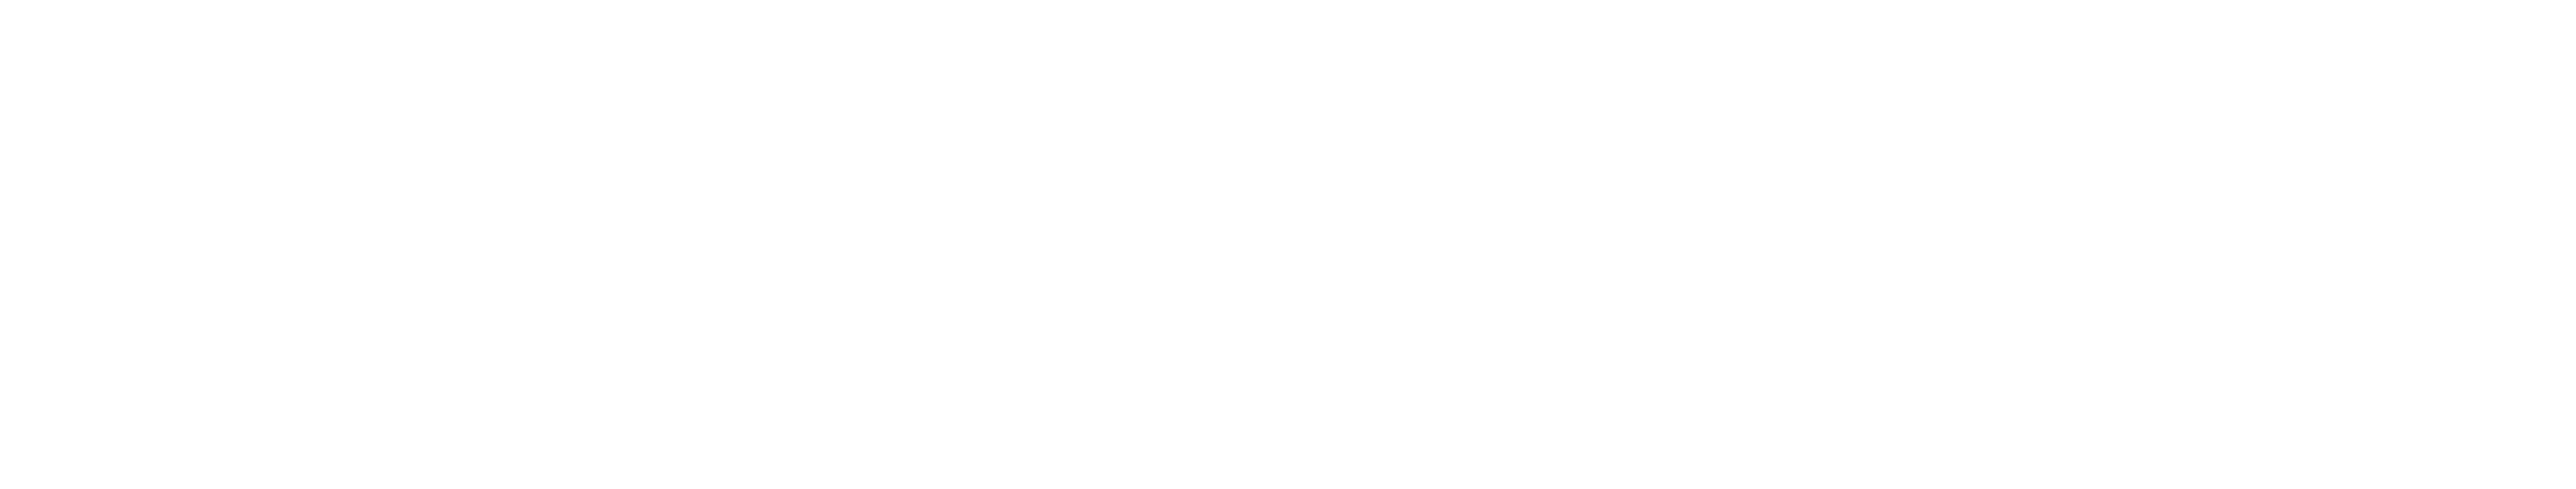 Stacie Pineda Real Estate Group